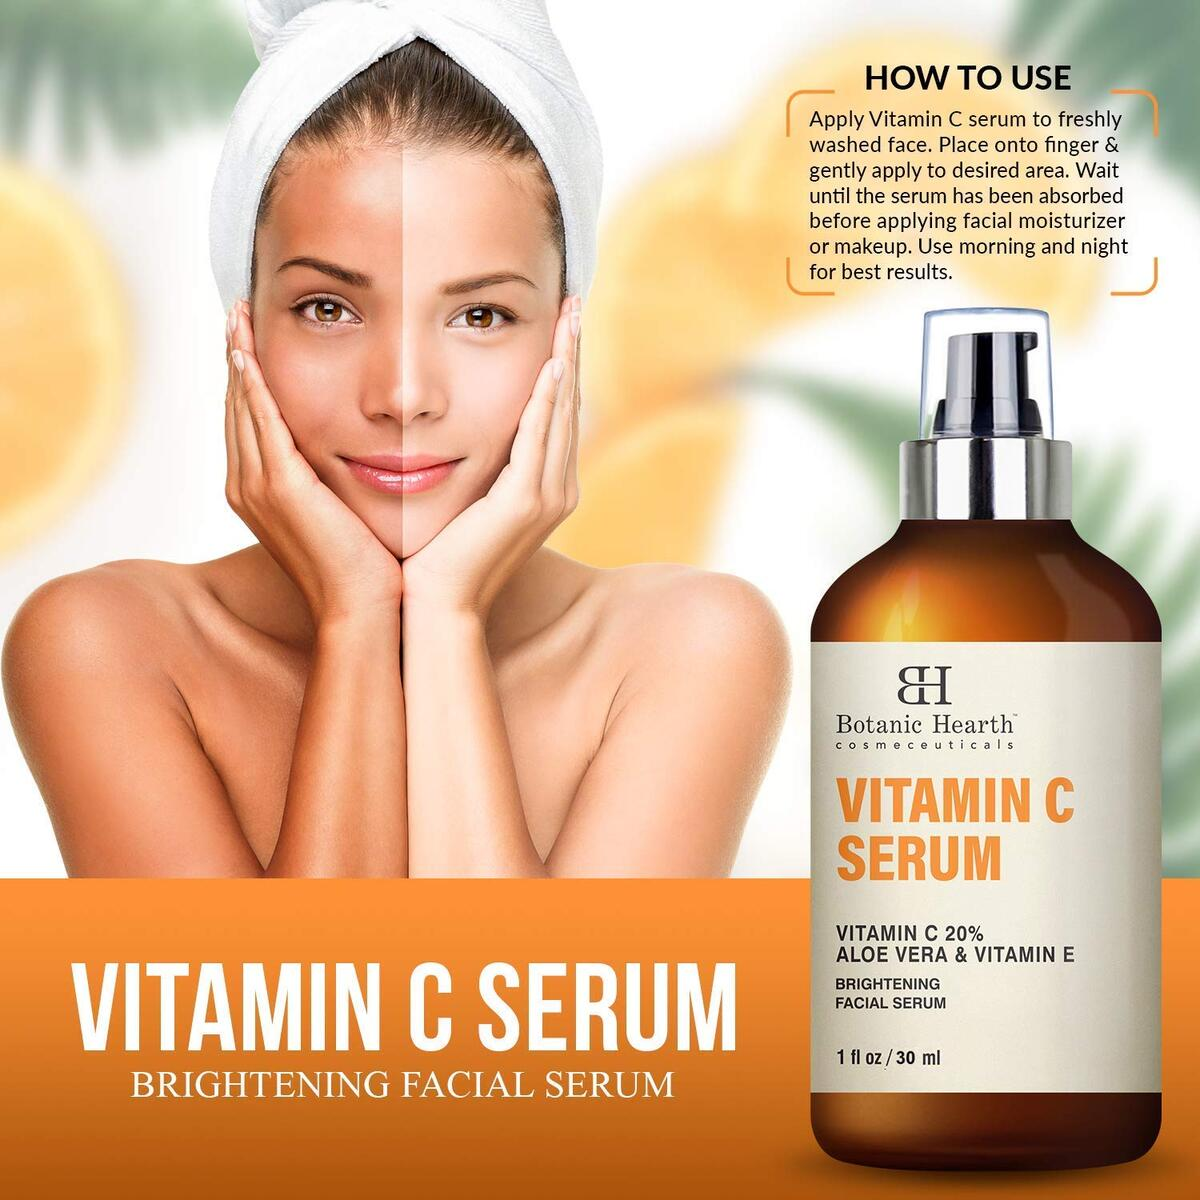 Vitamin C Serum for Face - Facial Serum with Stabilized Formulation for Long Shelf Life - Anti Aging, Advanced Skin Care - 1 fl oz